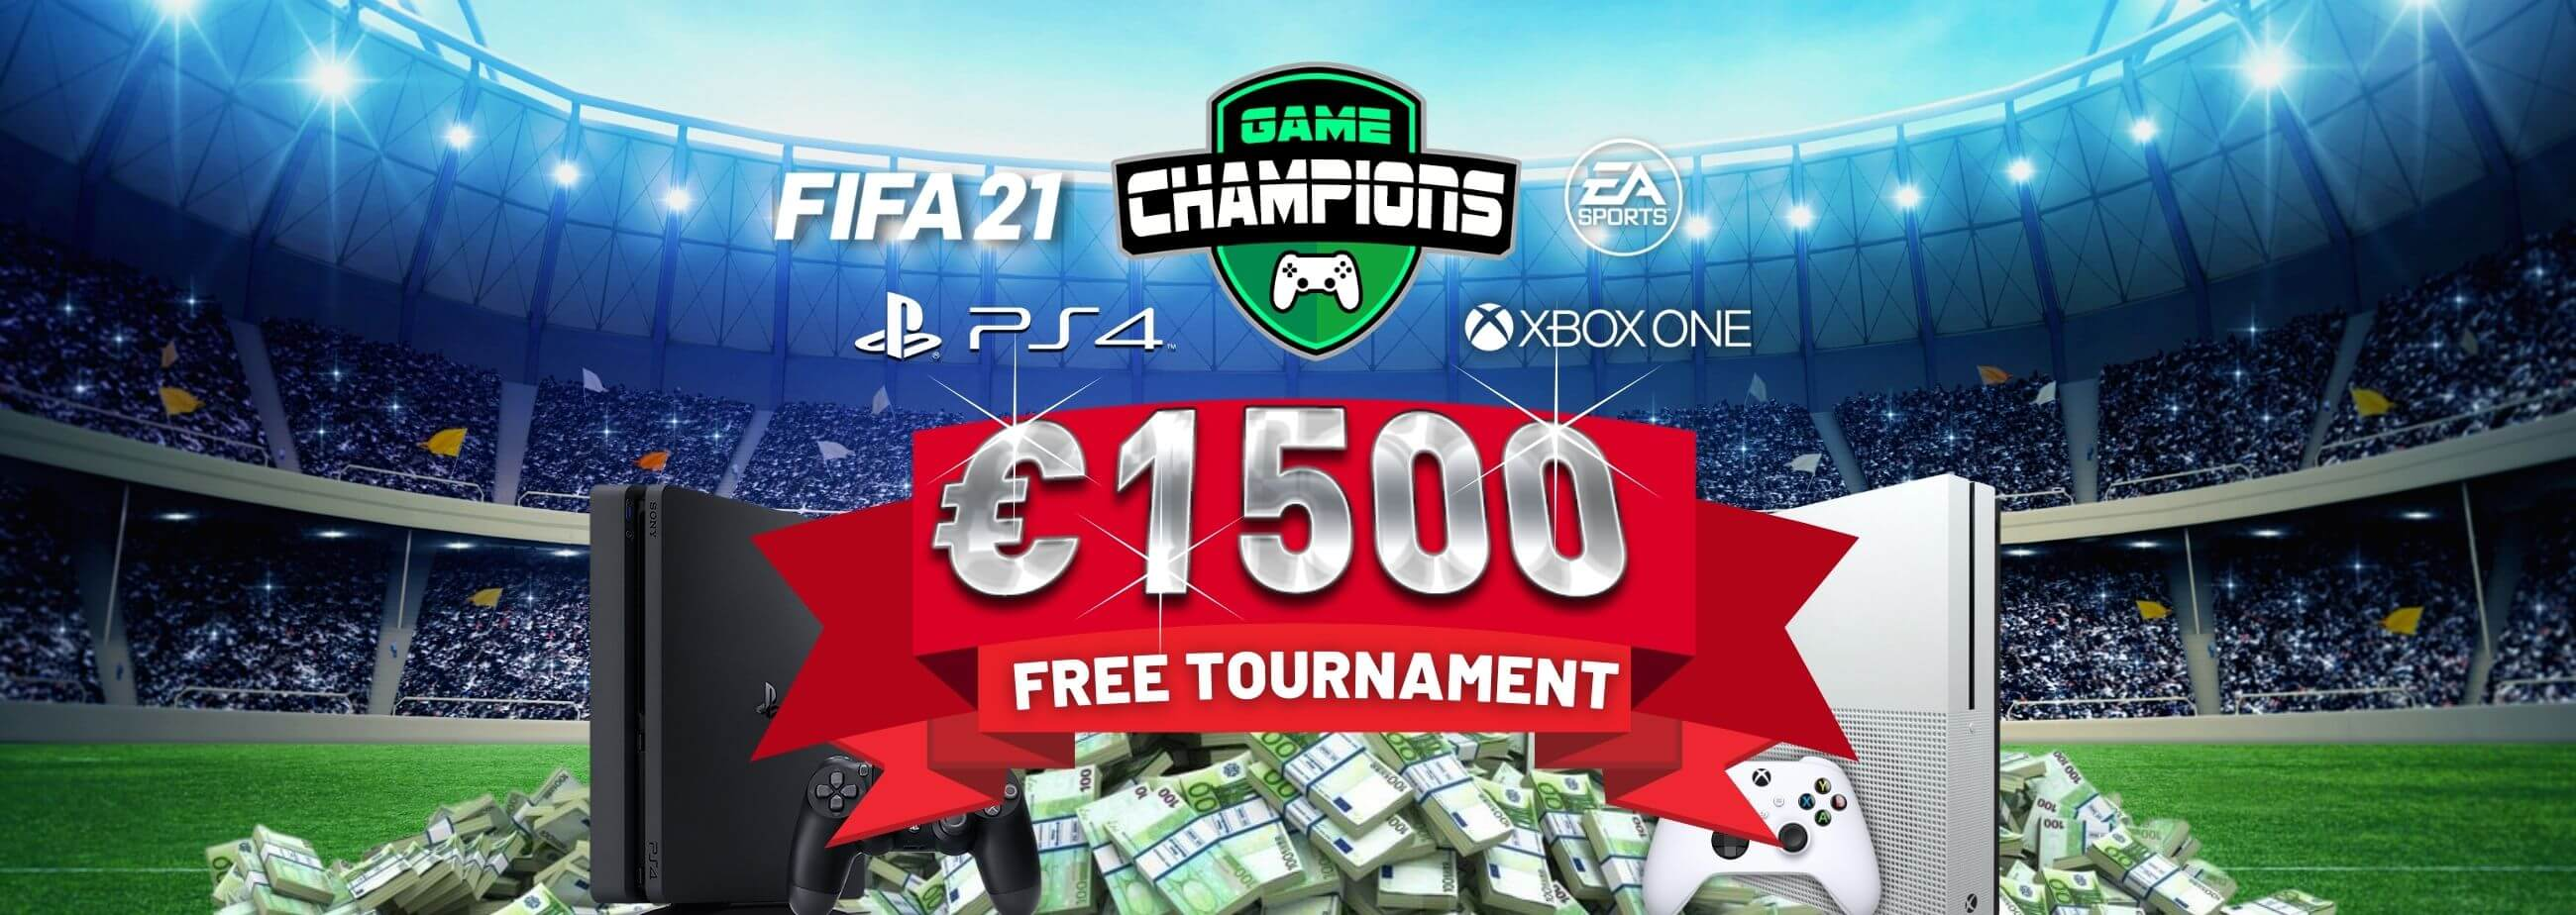 FIFA21 Tournament PS4 and Xbox .jpg